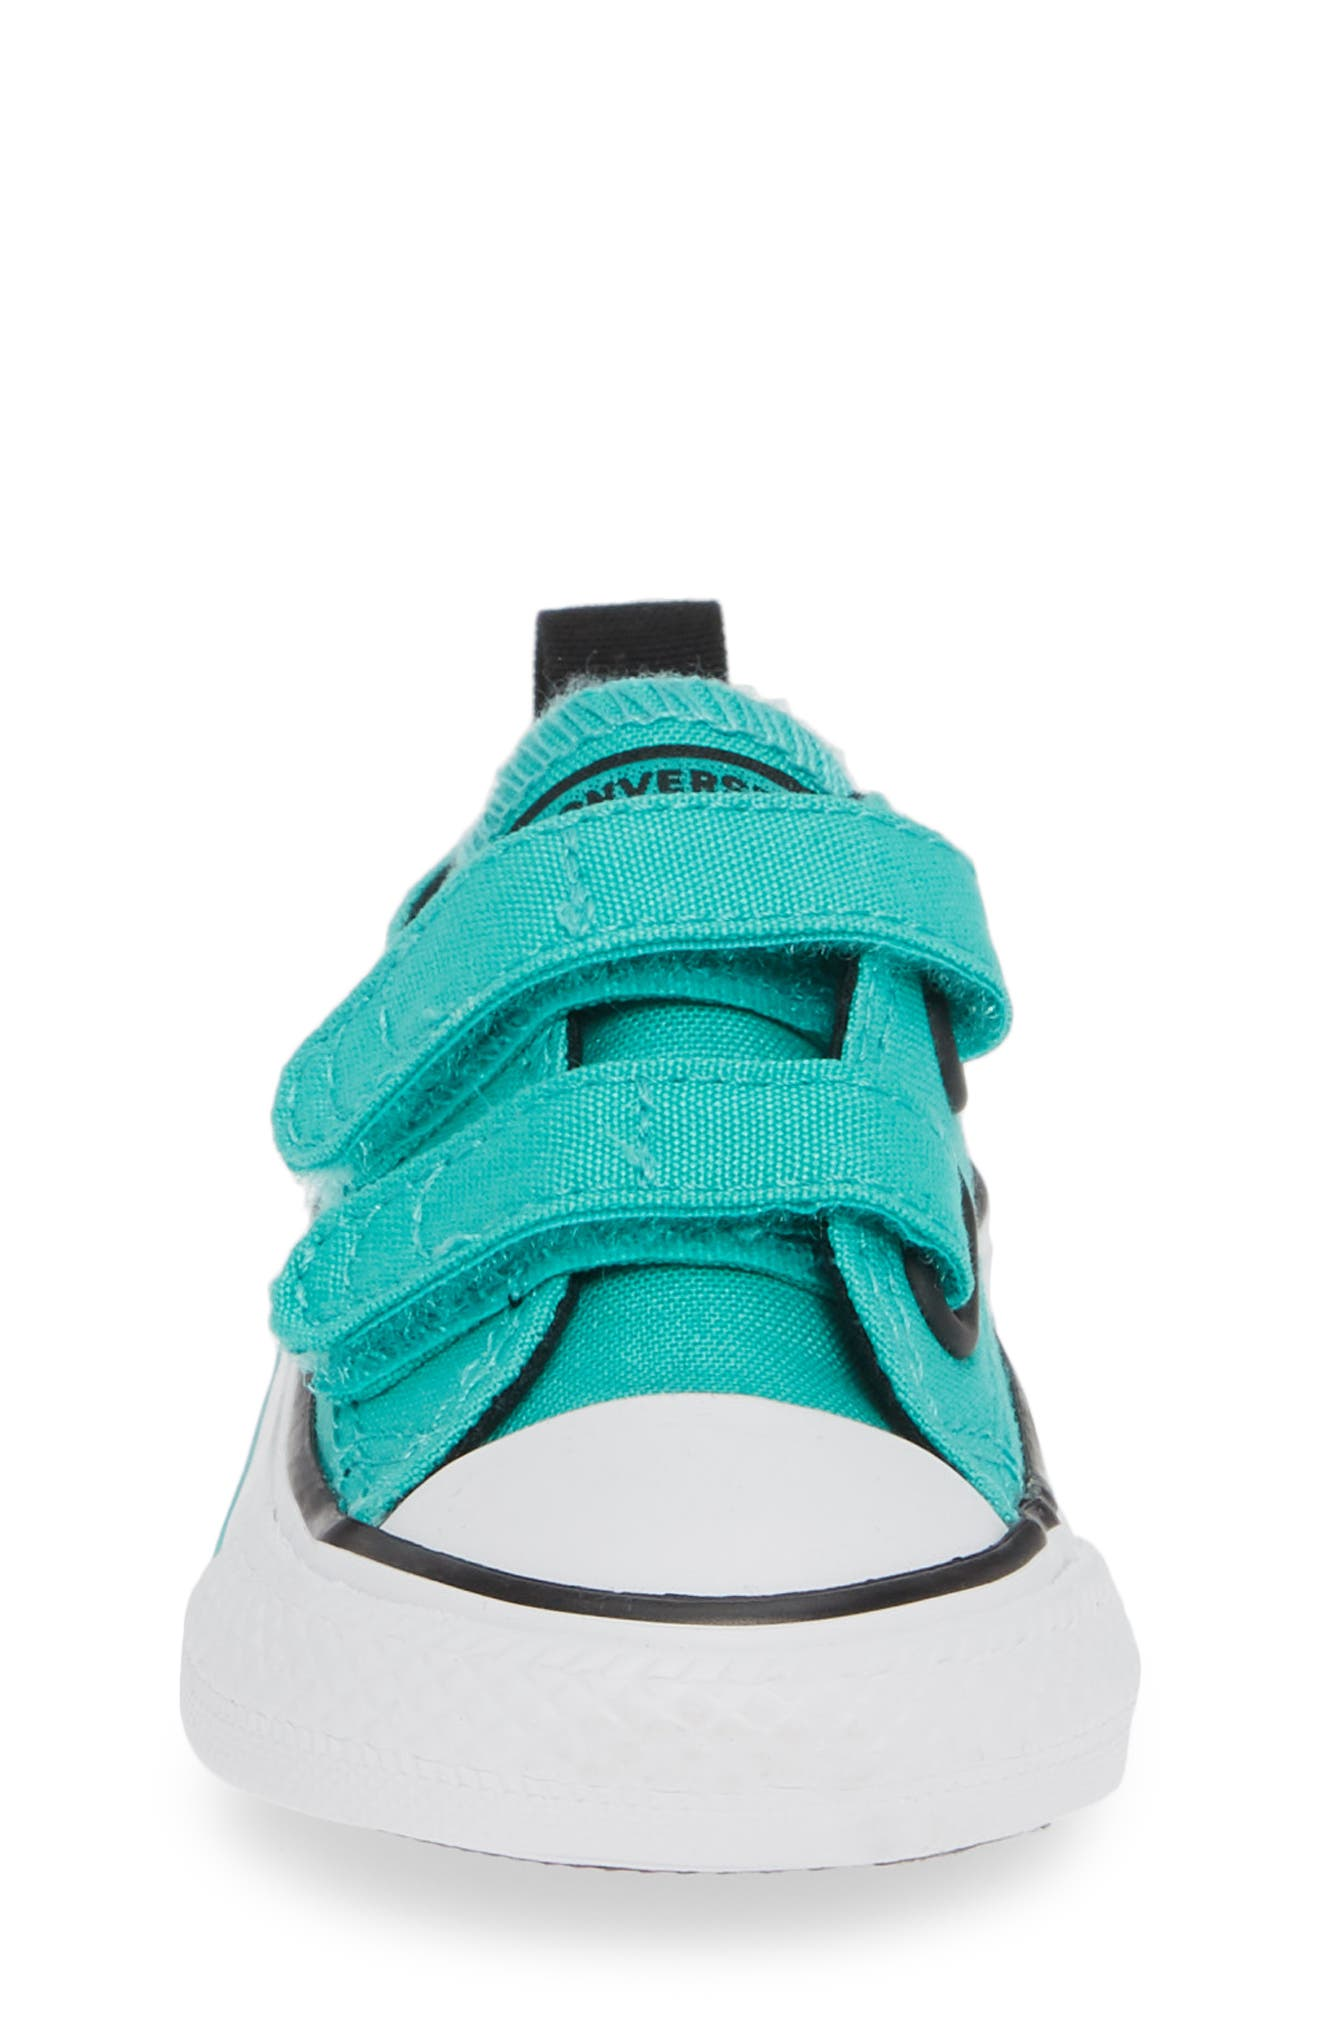 Chuck Taylor<sup>®</sup> 'Double Strap' Sneaker,                             Alternate thumbnail 4, color,                             PURE TEAL